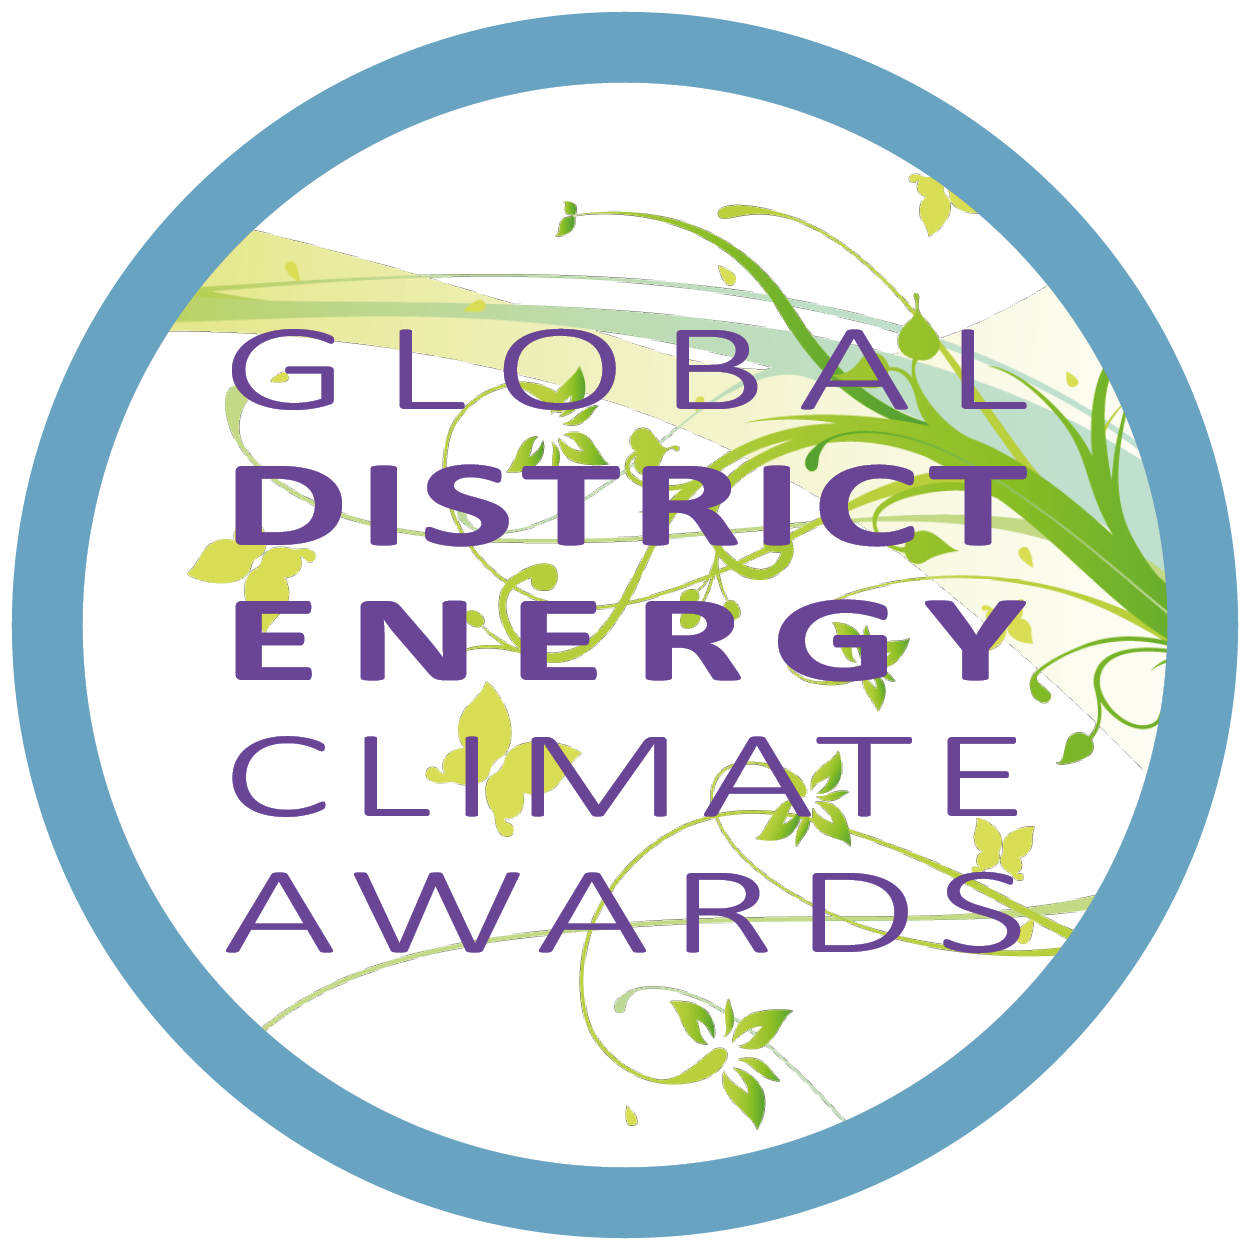 Global District Energy Climate Awards